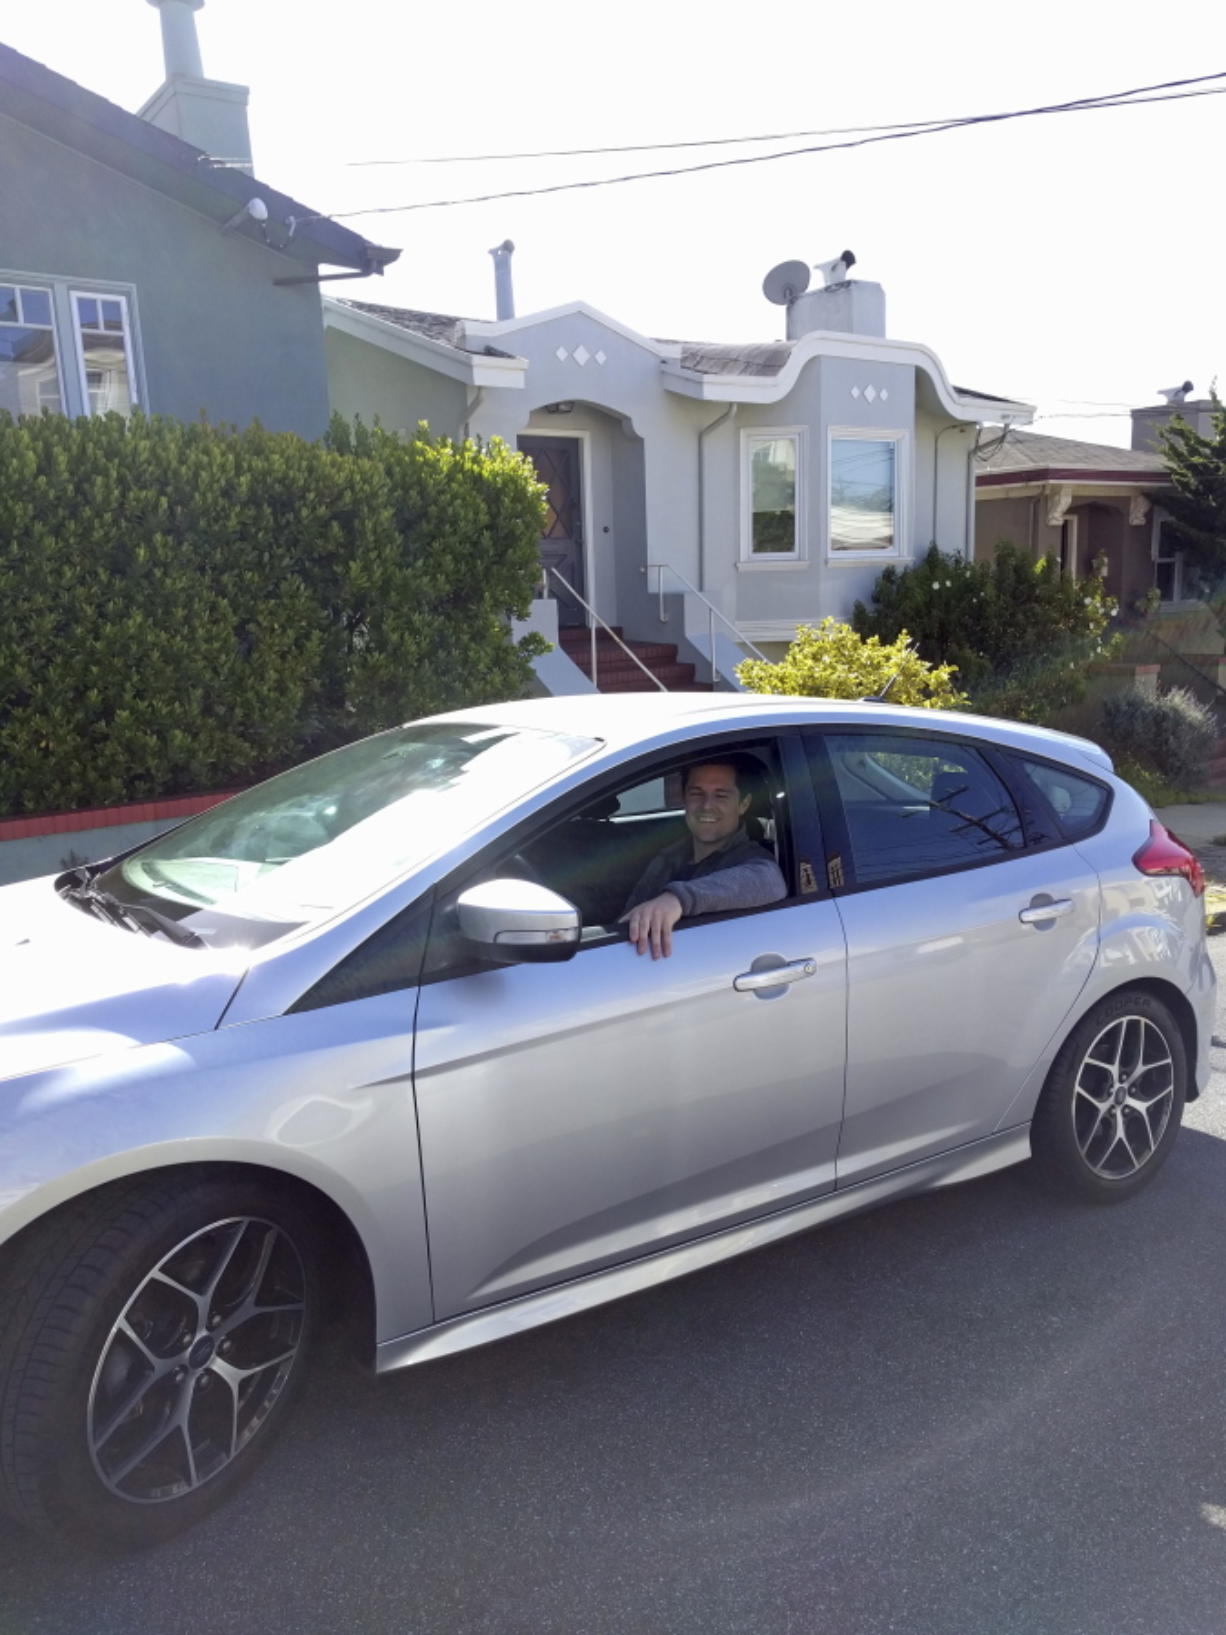 Canvas' first subscriber, James O'Connor, sits in his car from the company, which lets drivers pay to use a car without a long-term commitment.